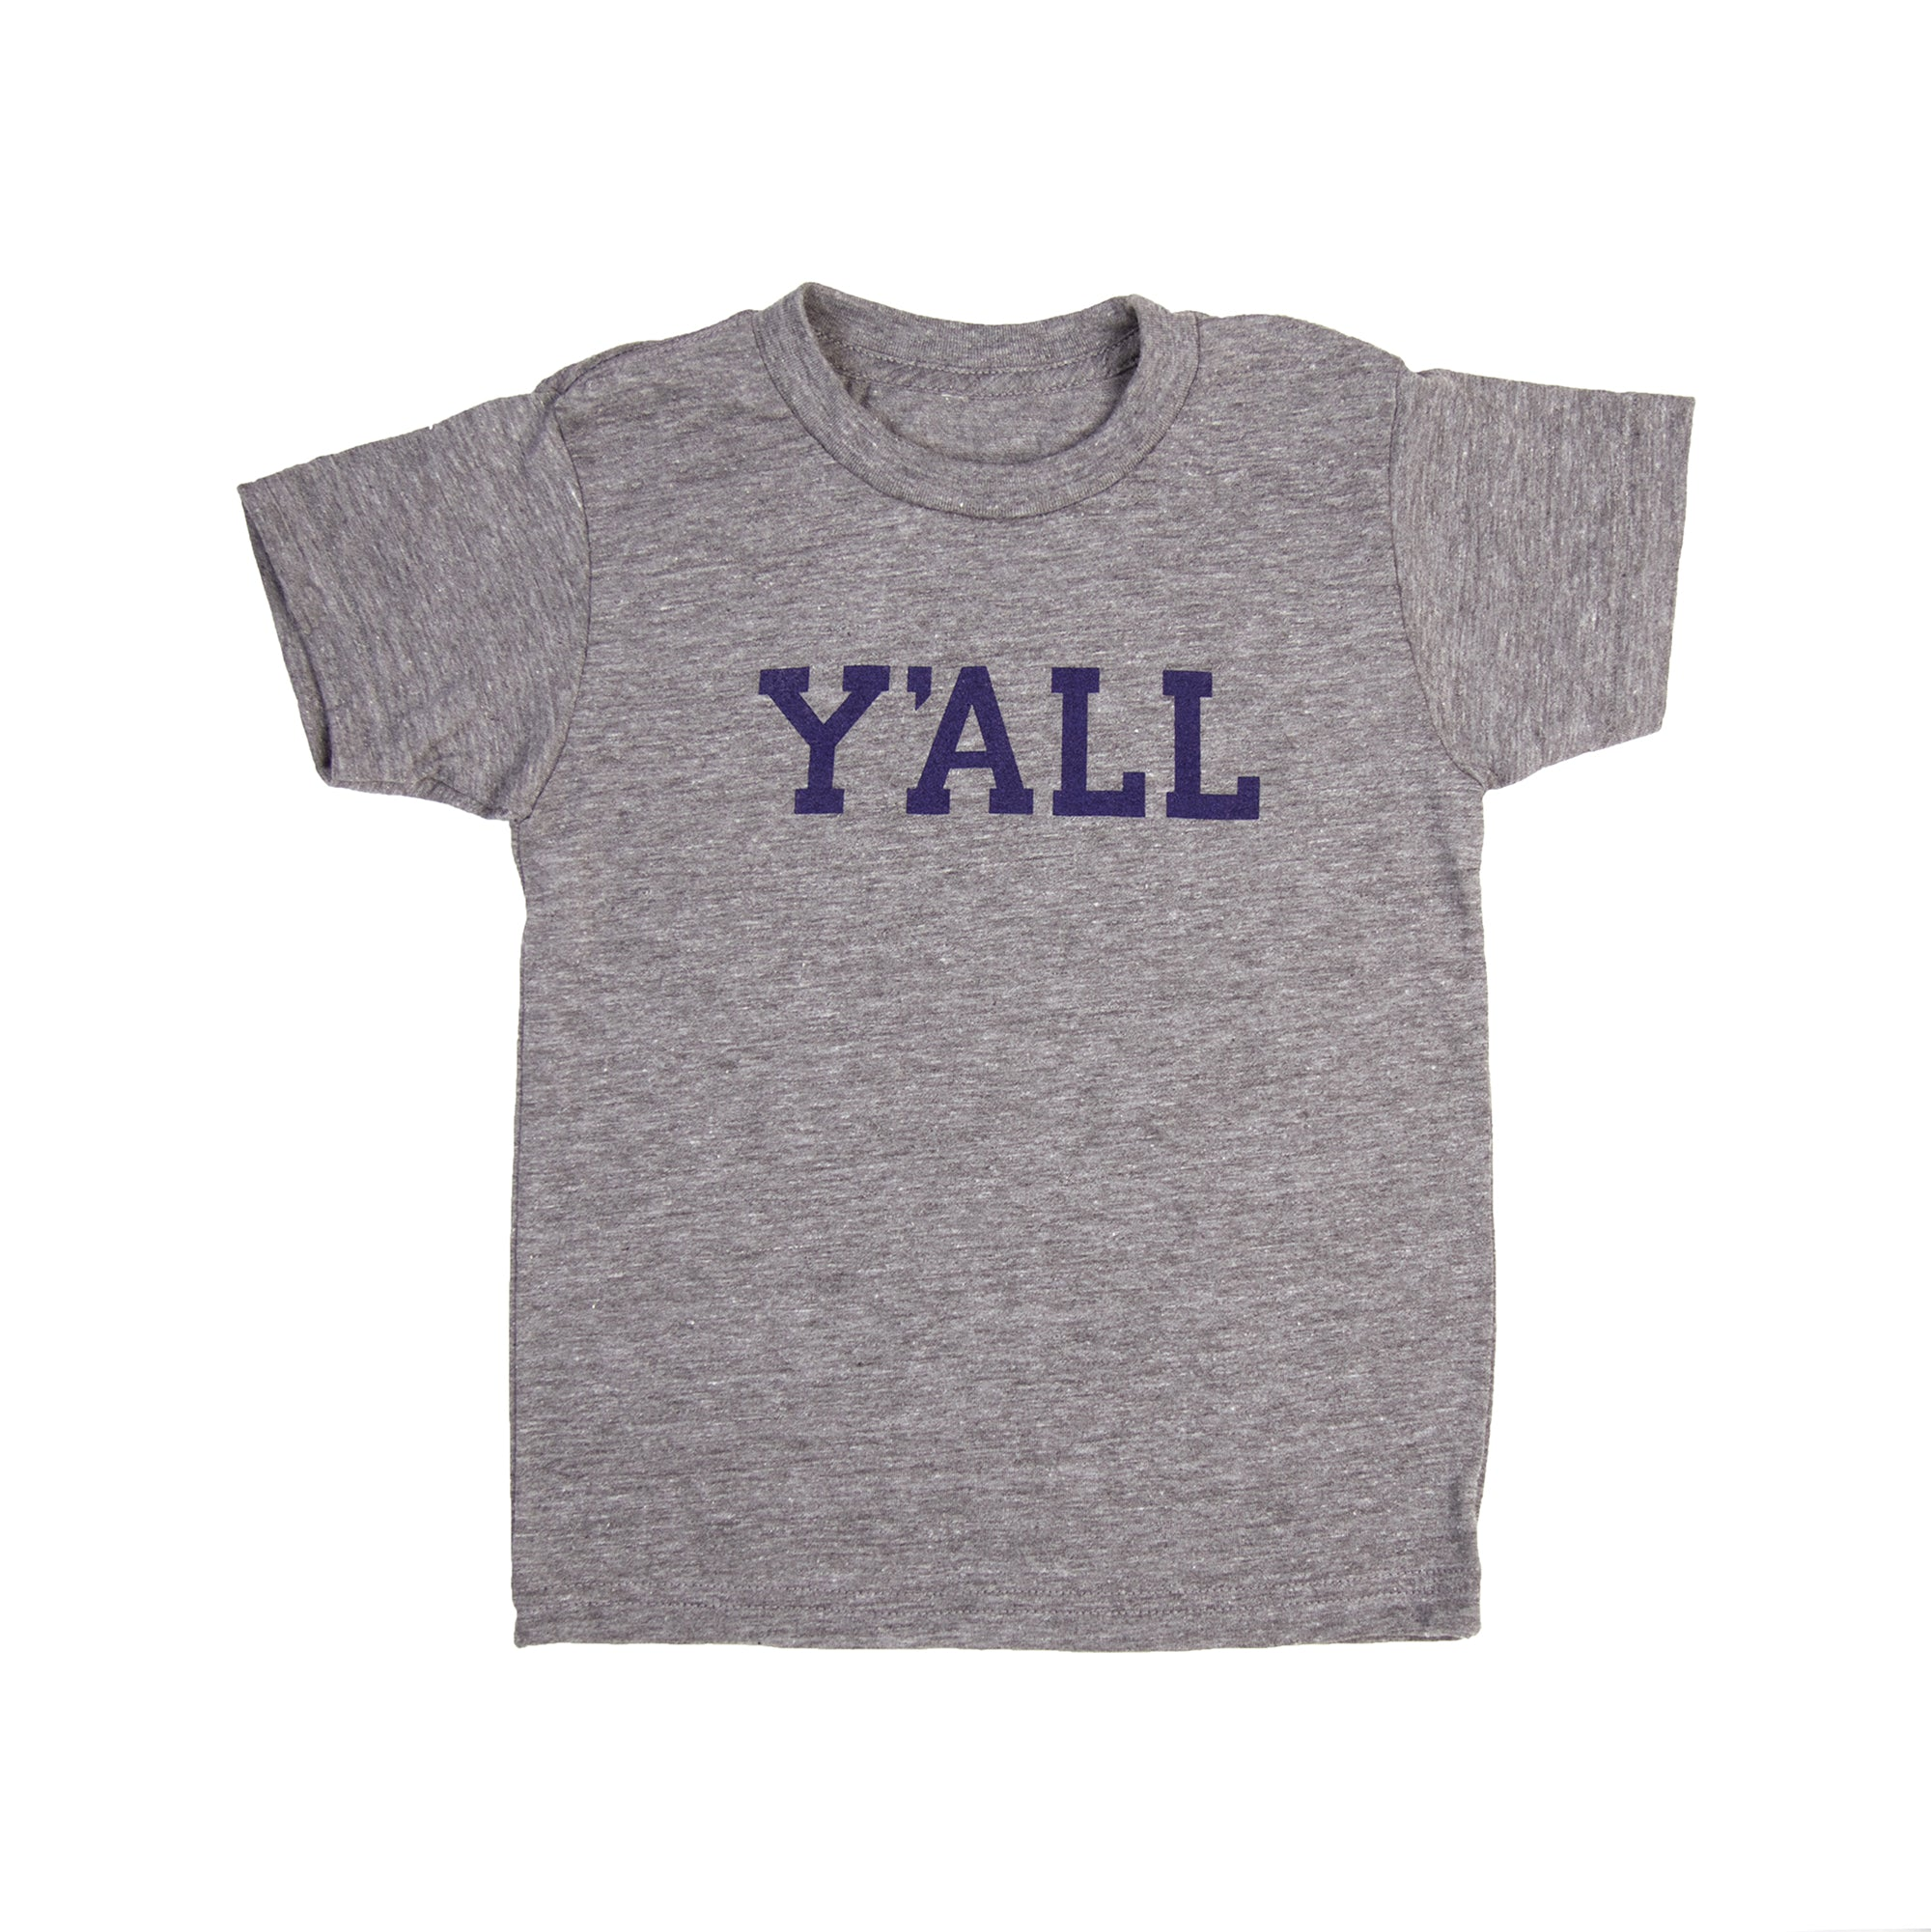 Y'ALL Kids T-Shirt (Grey)-T-Shirt-KY for KY Store